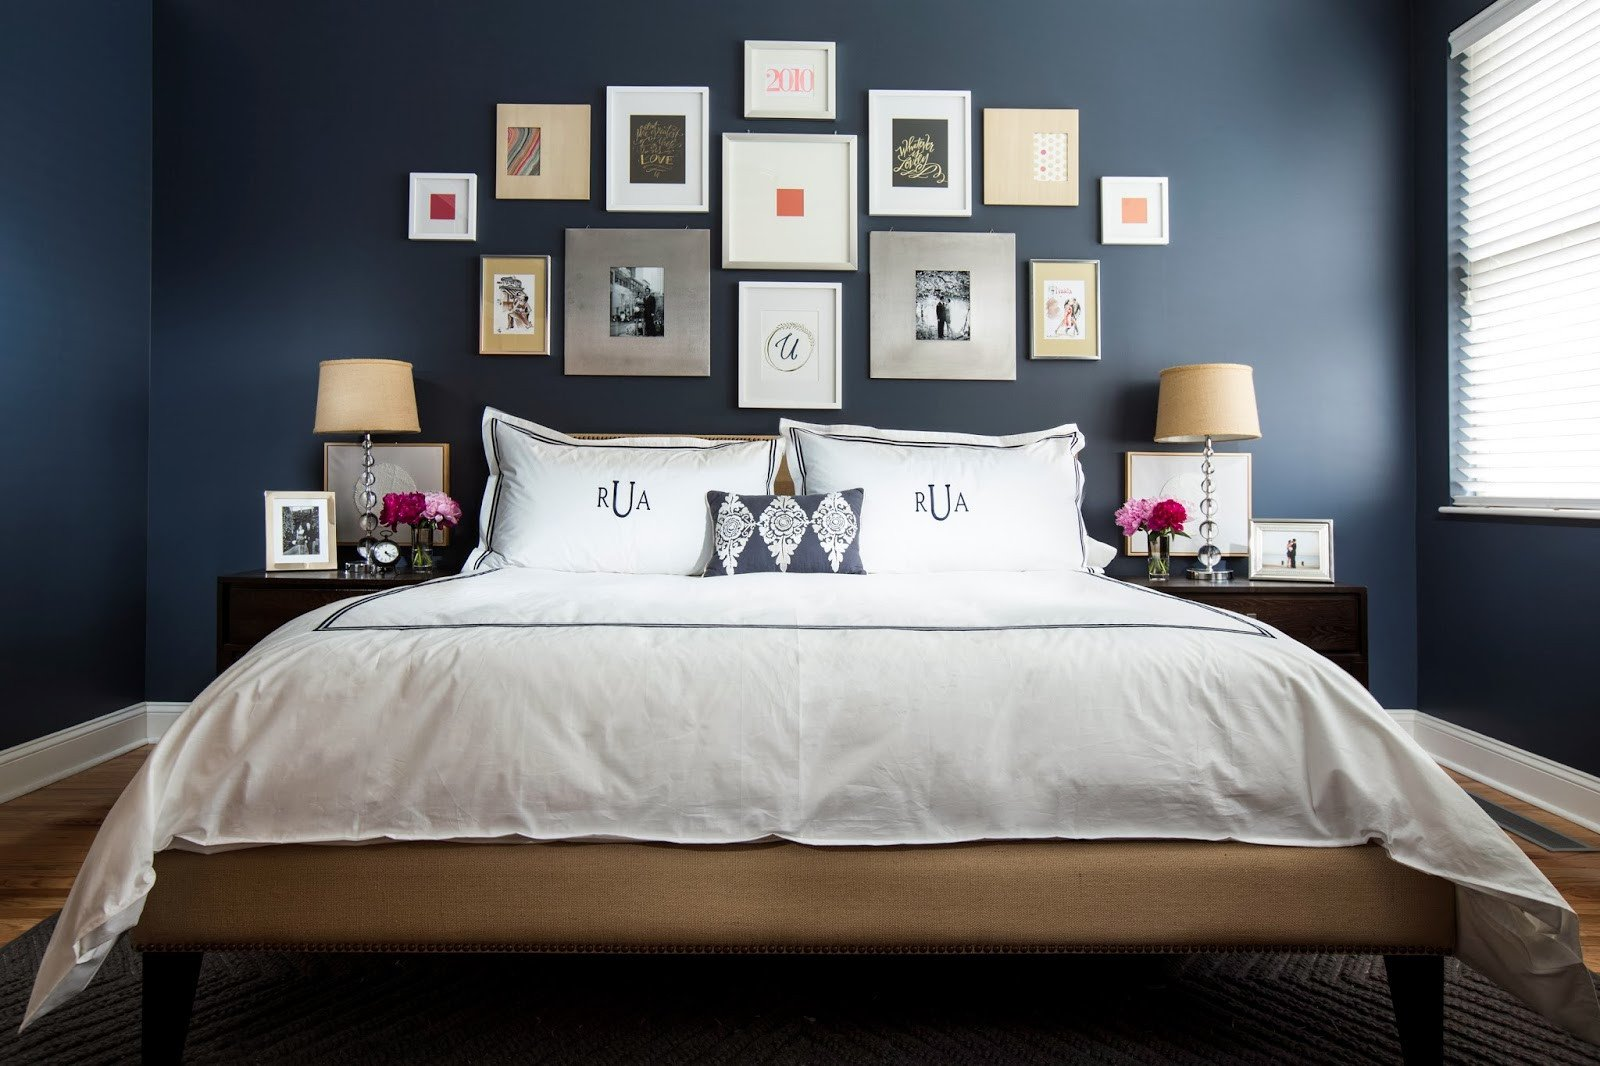 Navy and White Bedroom Inspirational Bedroom Decorating Ideas Navy Blue